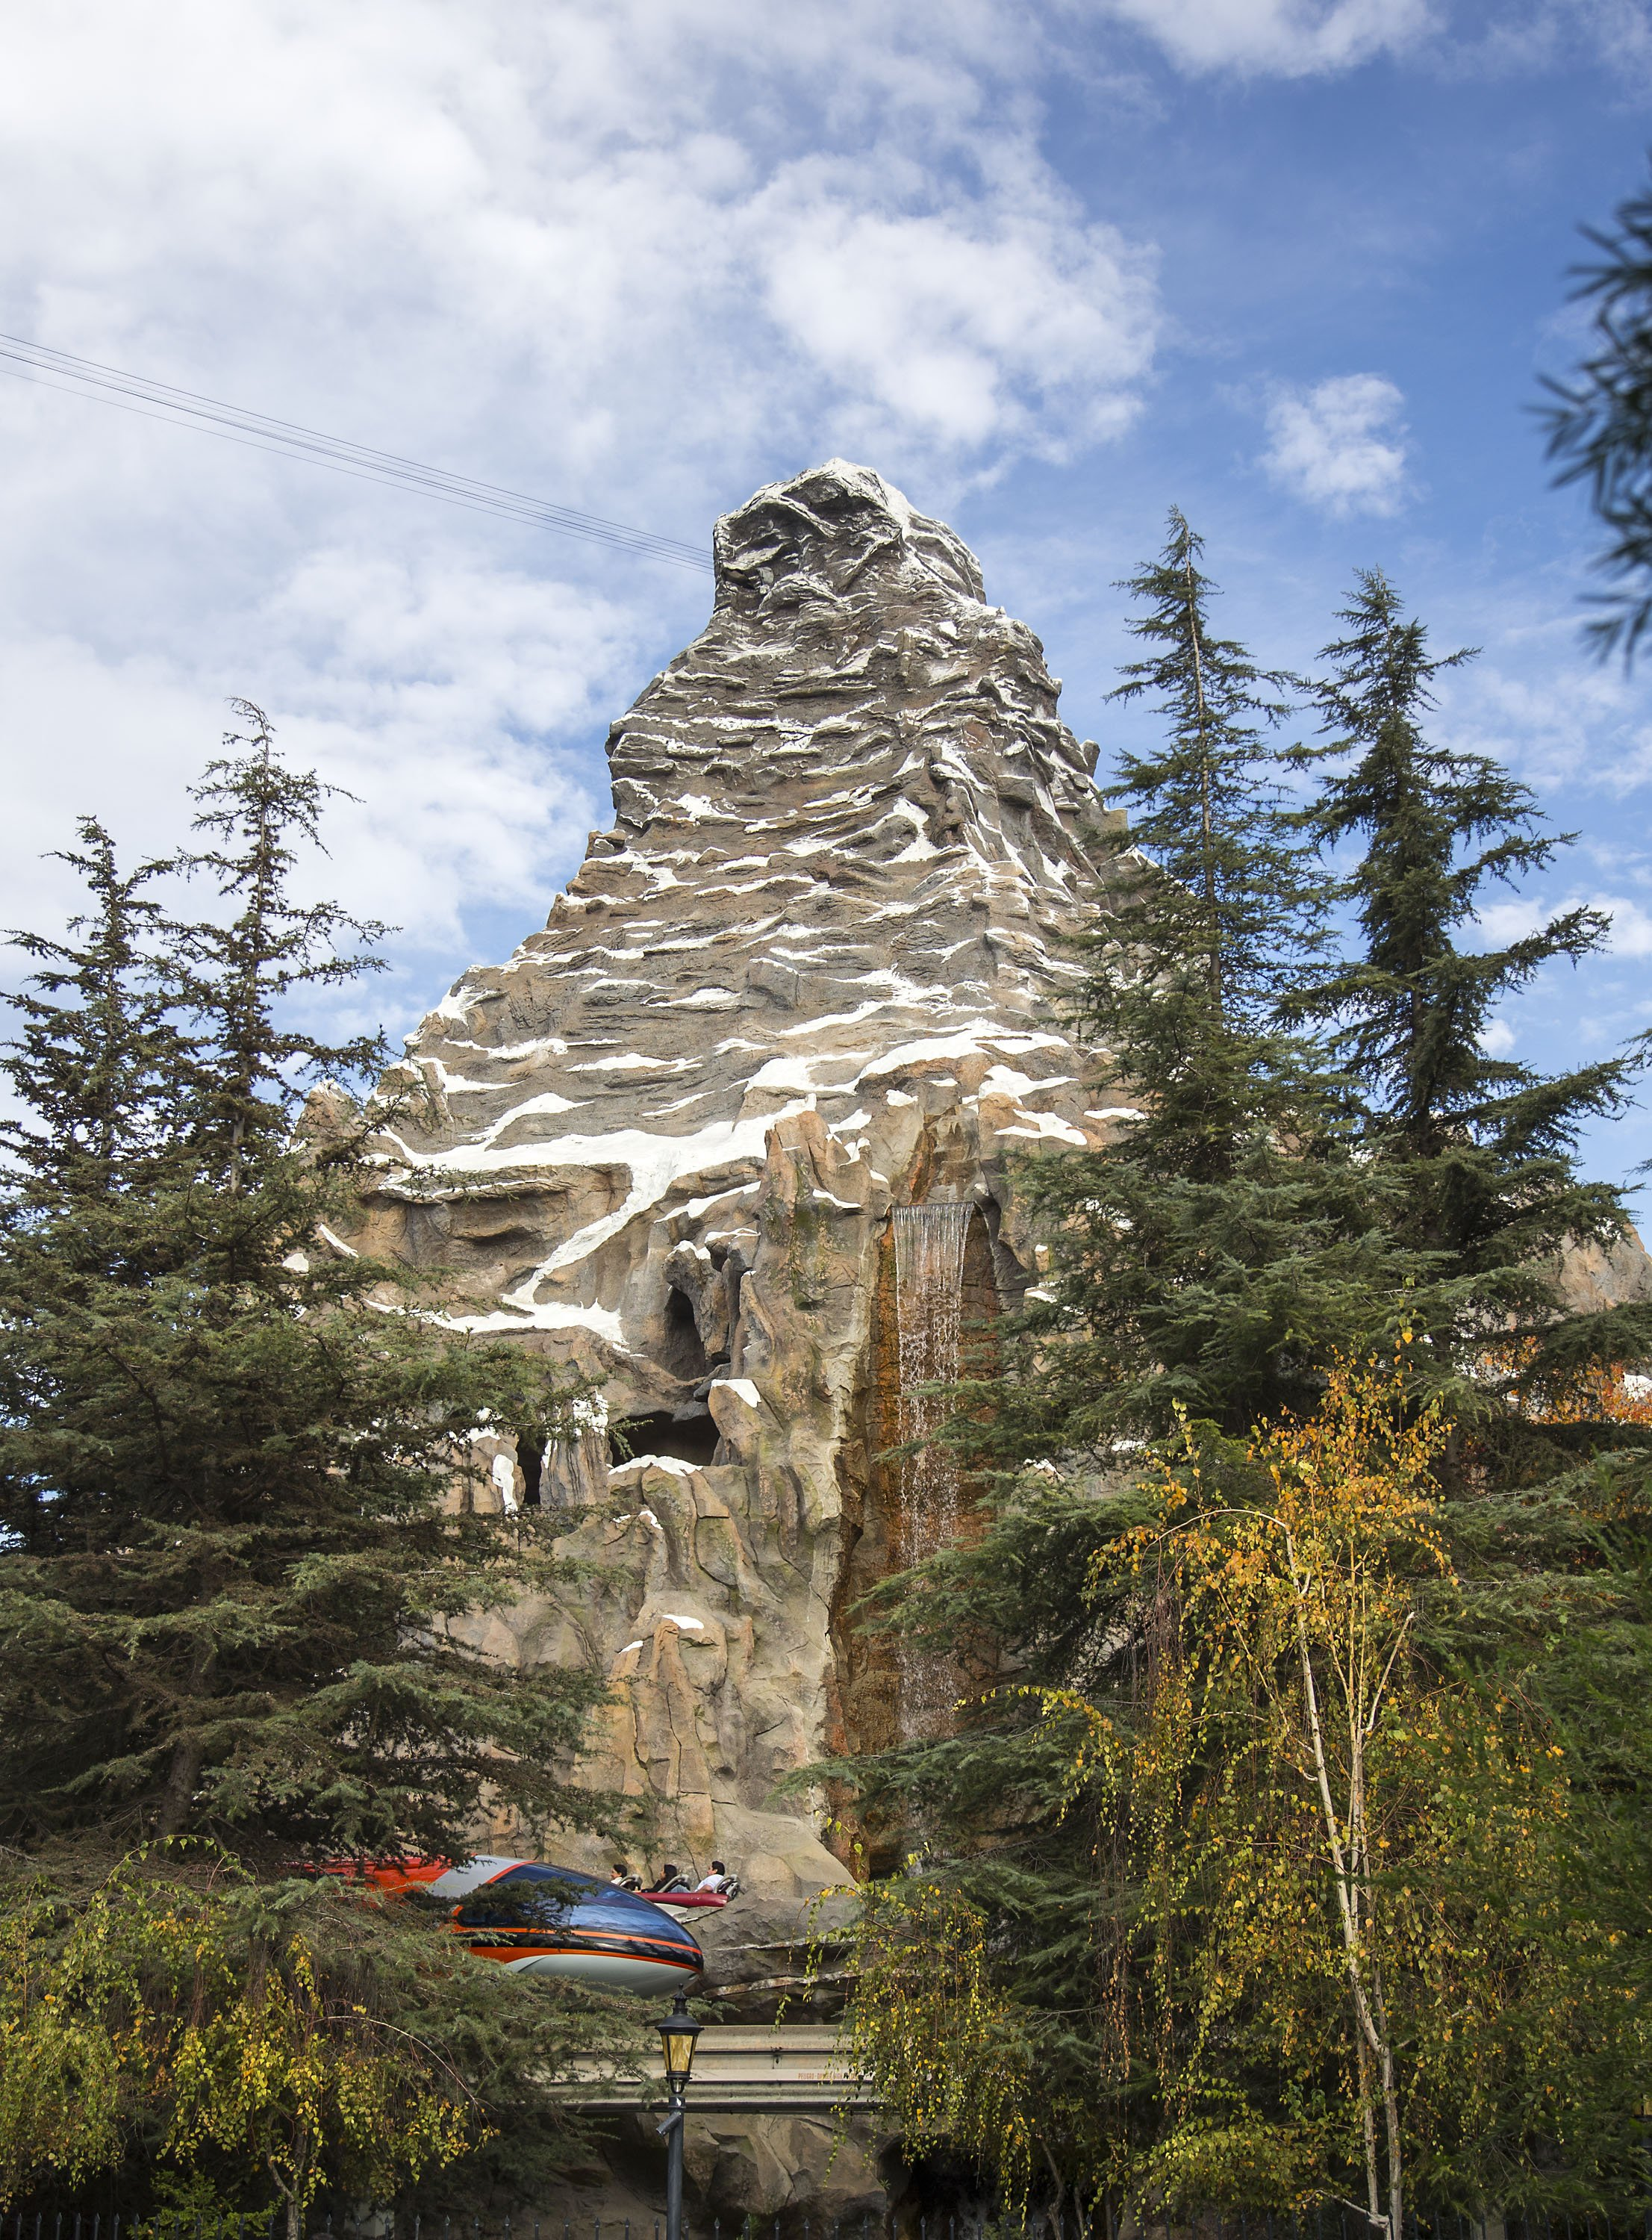 The Matterhorn at Disneyland Resort is a classic ride.